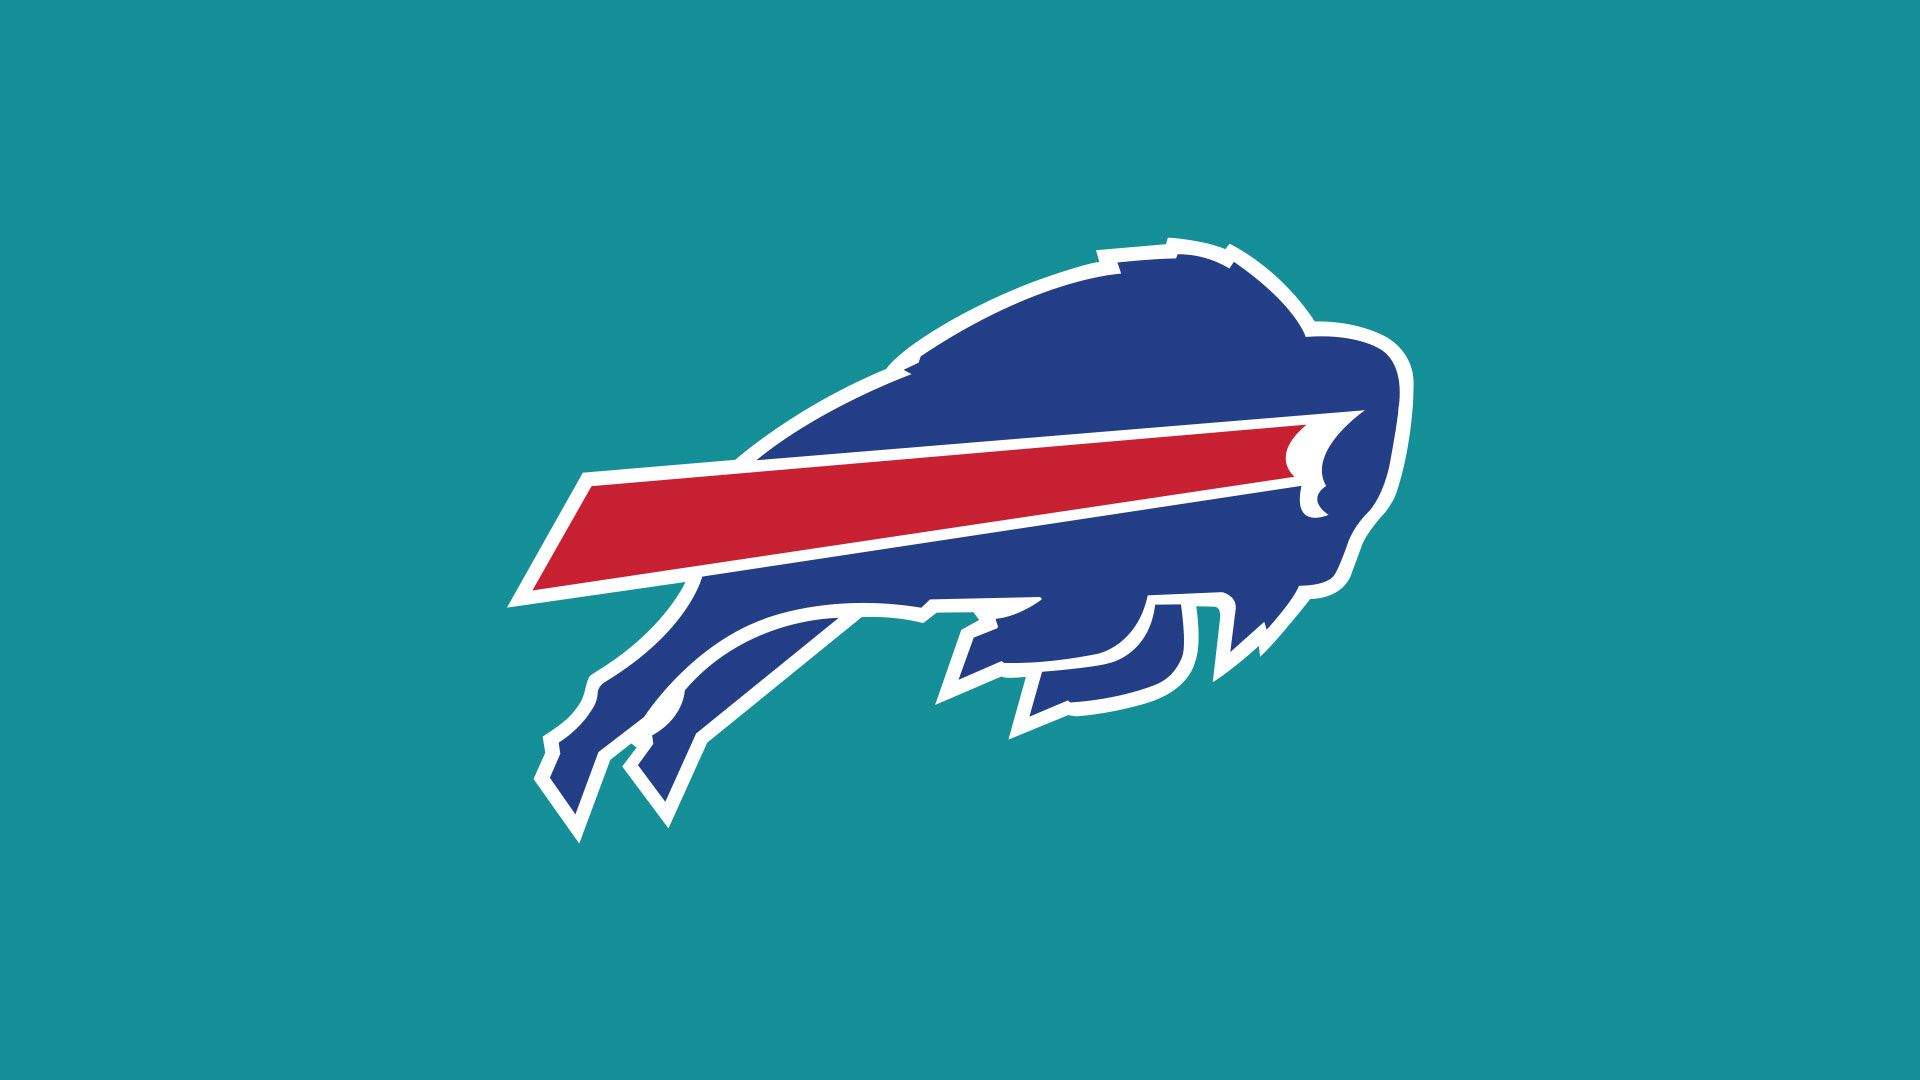 2021 Home Opponent: Buffalo Bills